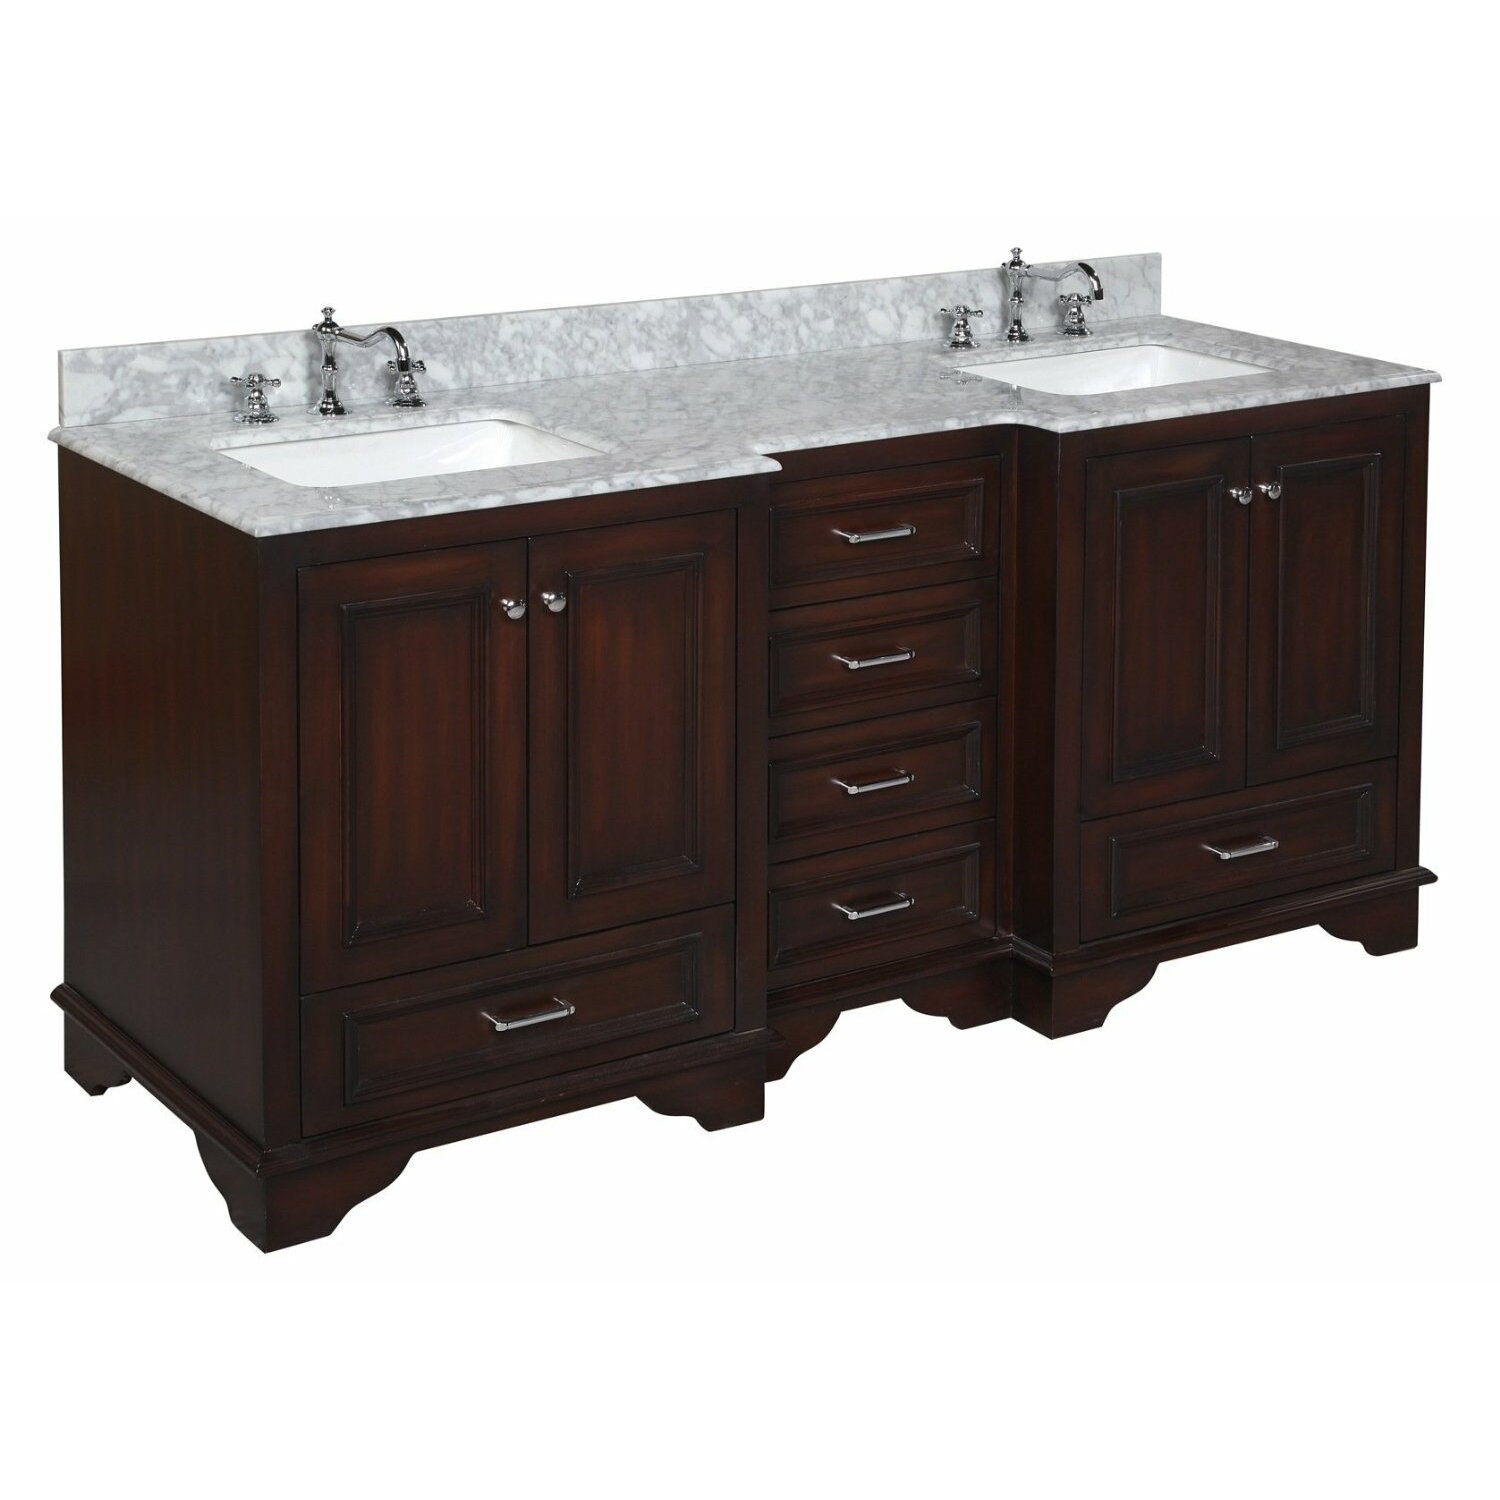 Kbc Nantucket 72 Double Bathroom Vanity Set Reviews